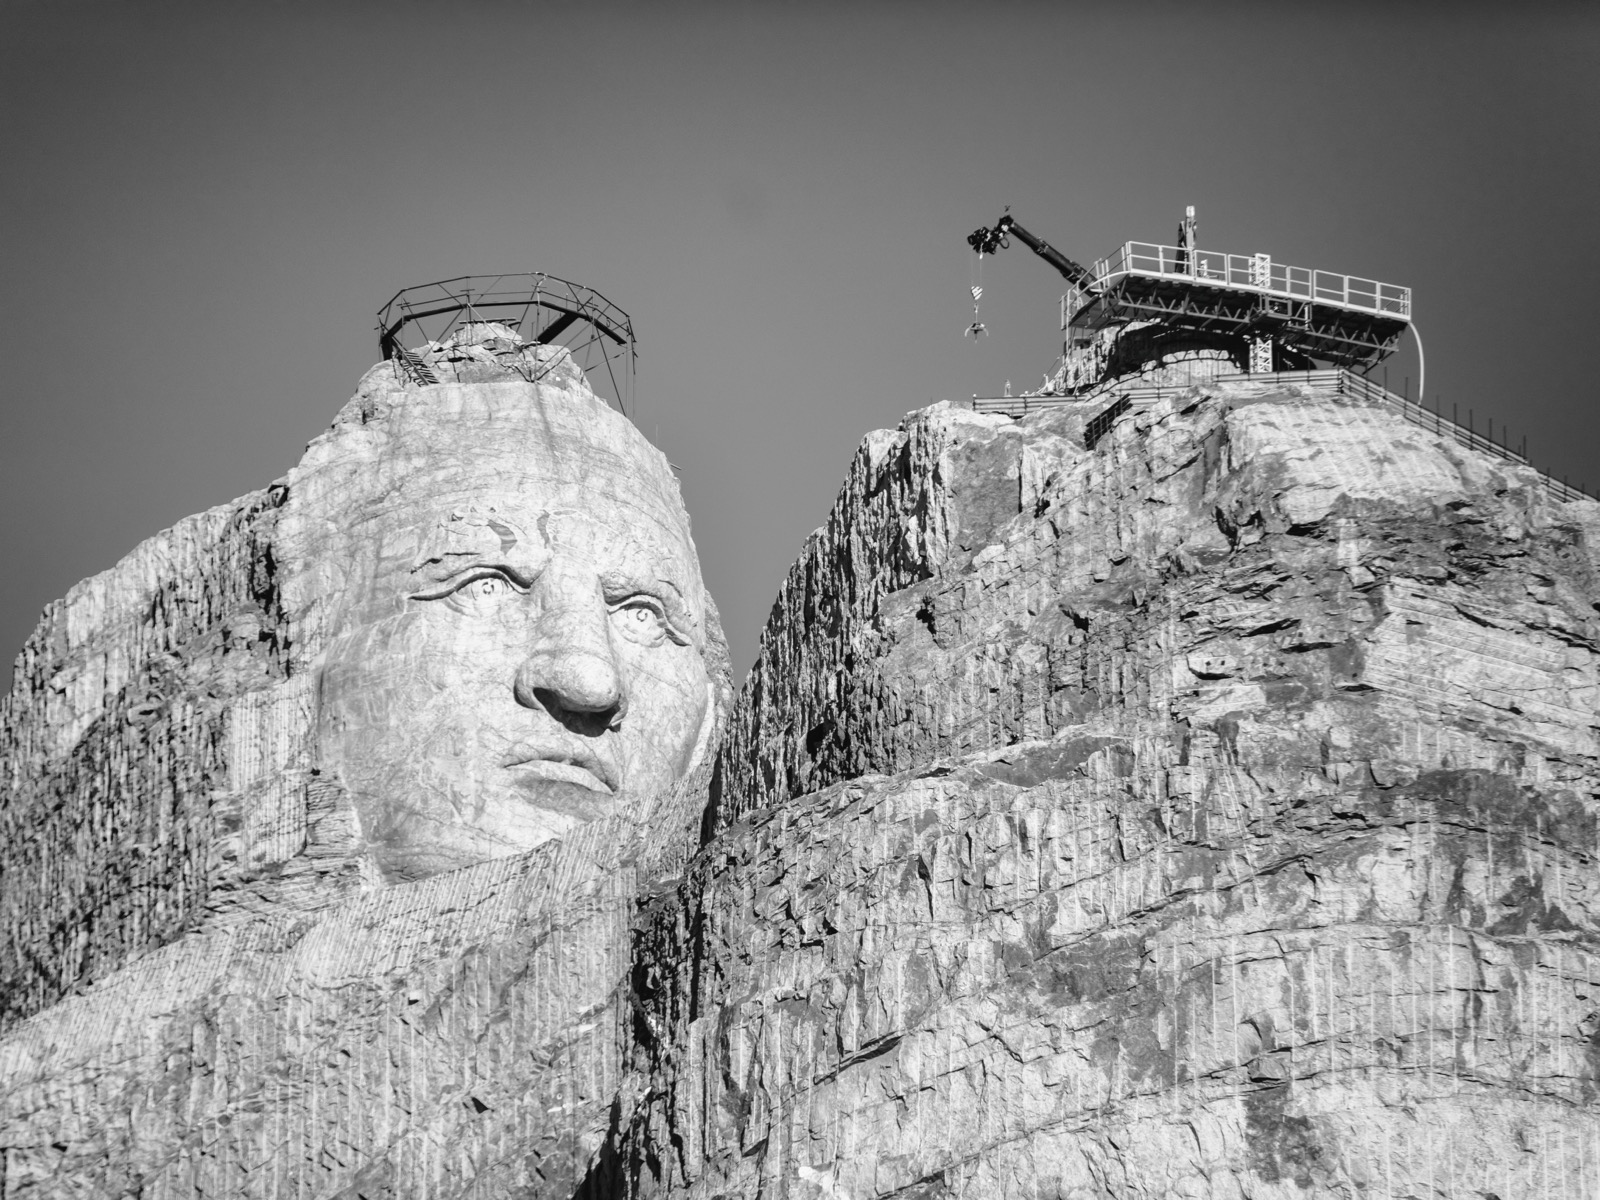 Tim Giago: Not all Lakota people are happy with the 'memorial' to Crazy Horse